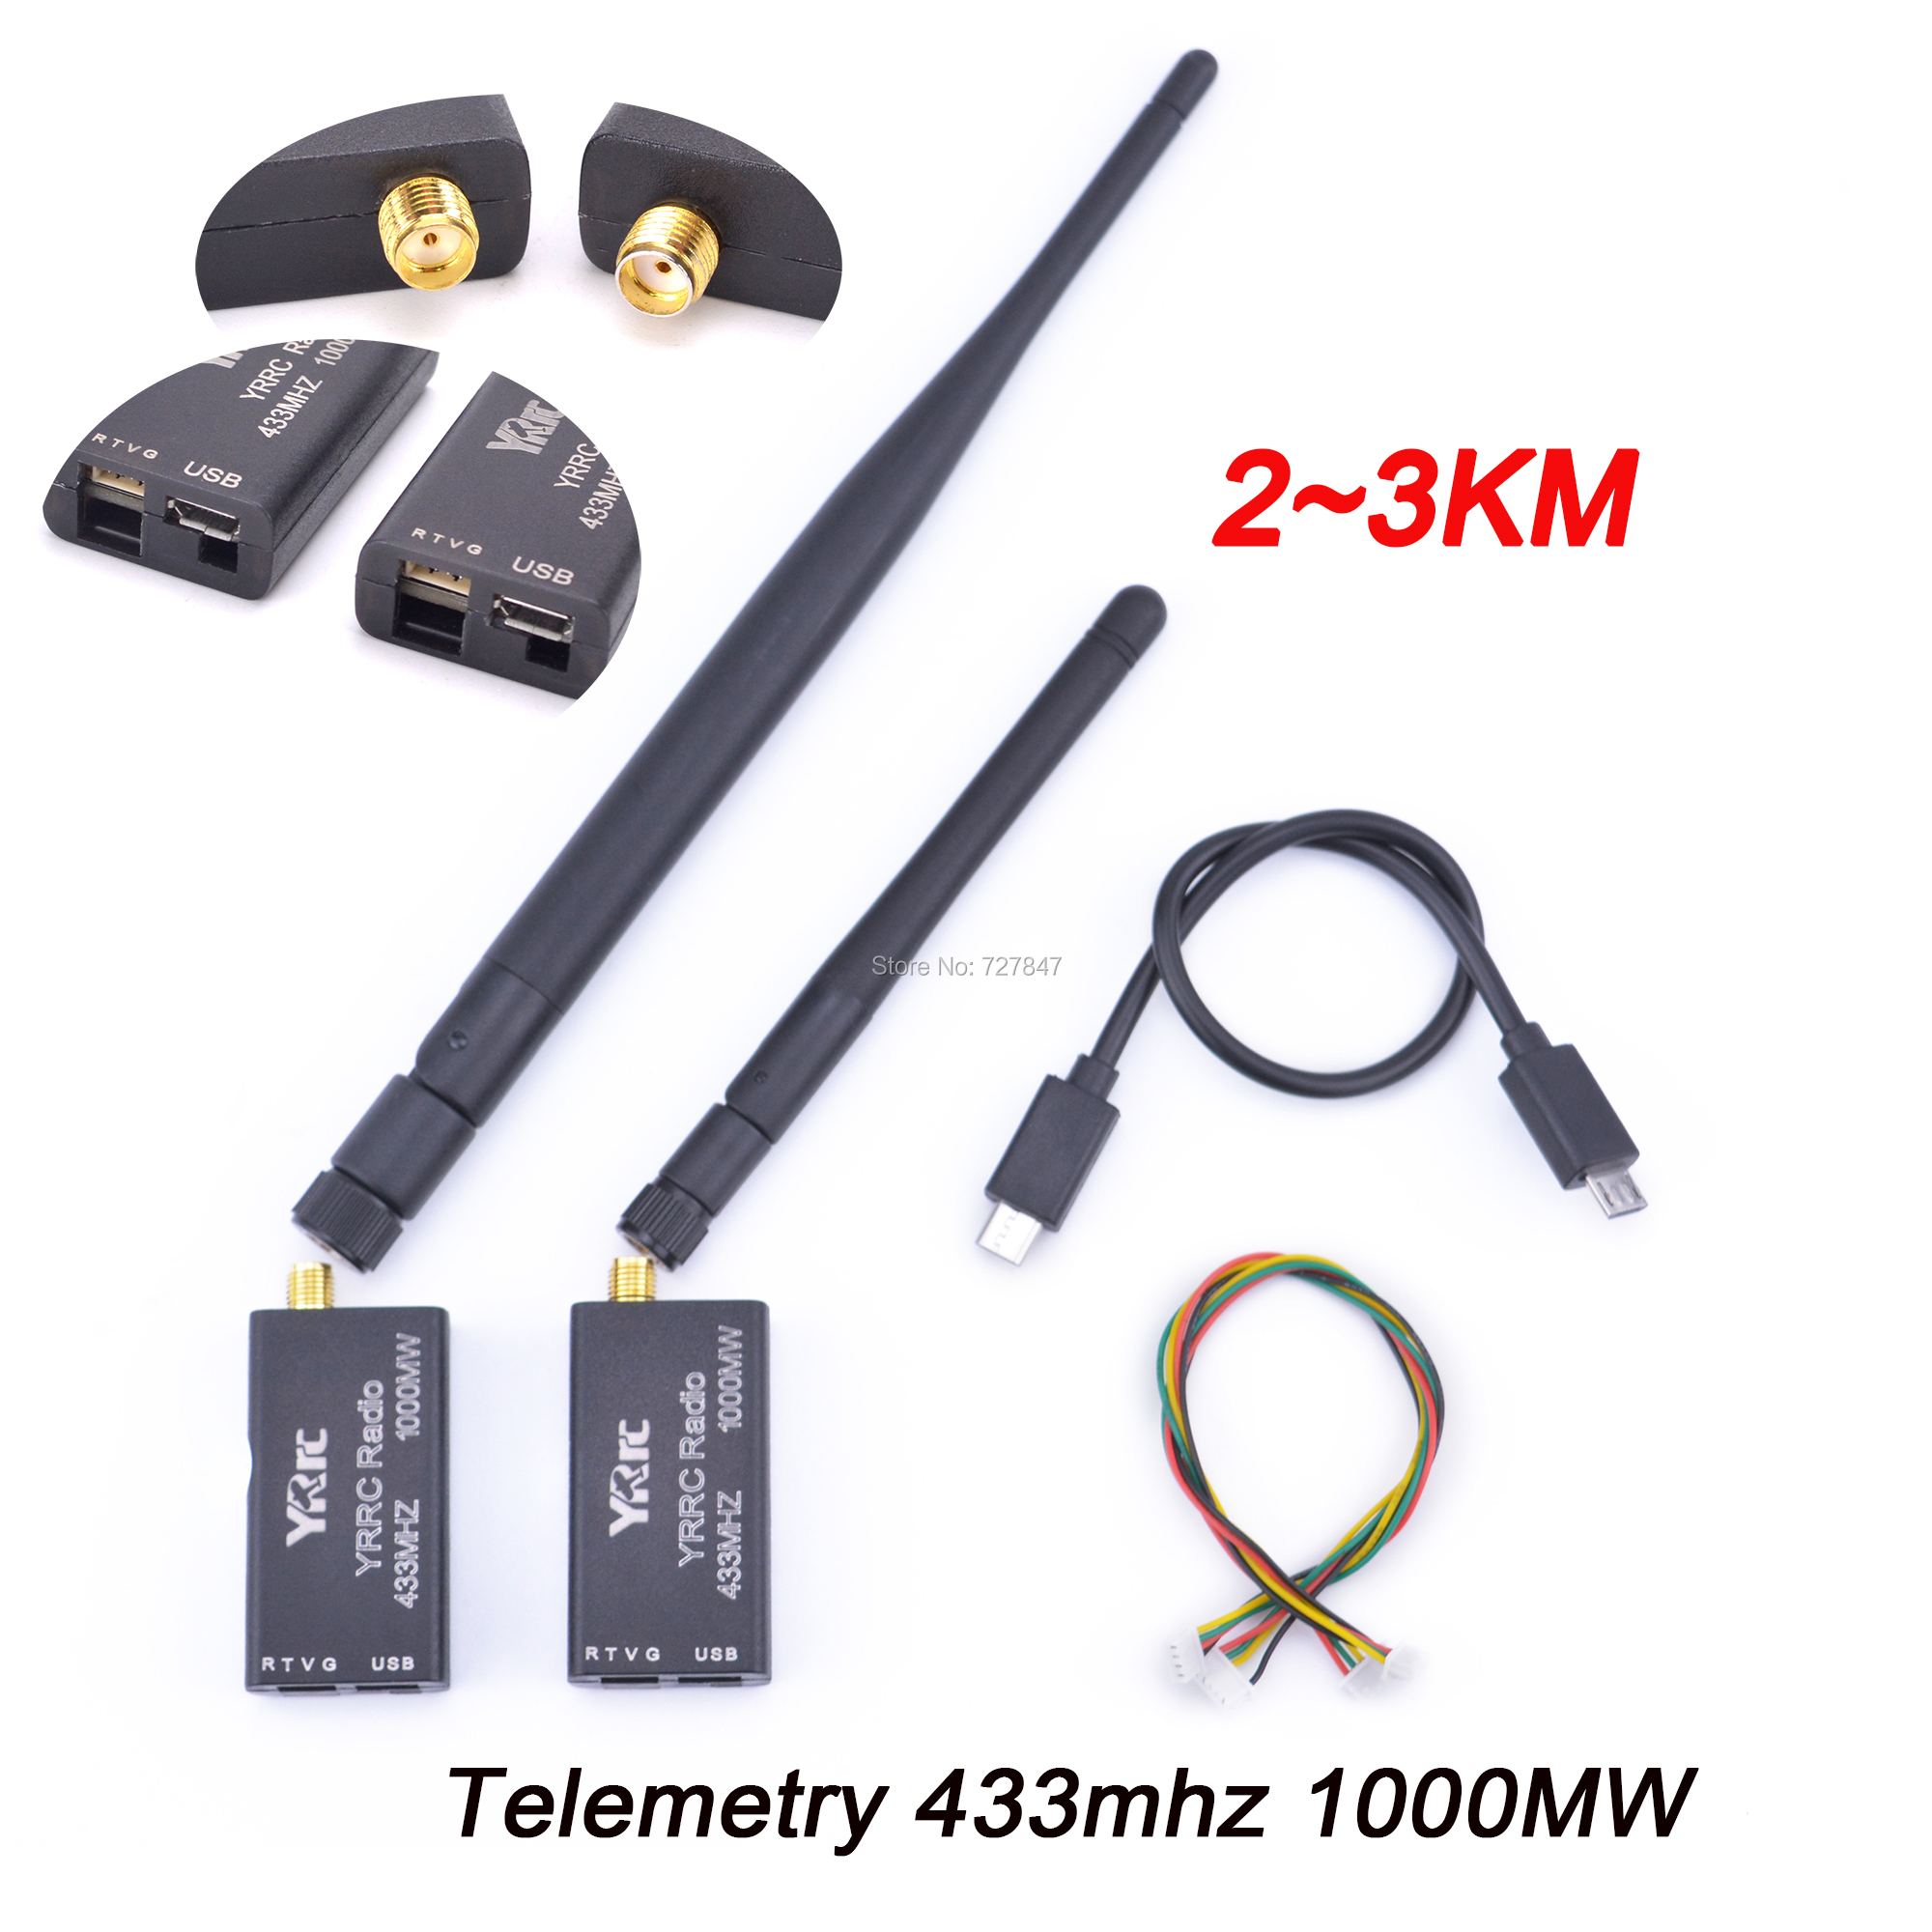 3DR Radio Telemetry 433mhz 433 1000MW 2~3KM Data Telemetry TTL & USB Port distance for APM Pixhawk Pixhack3DR Radio Telemetry 433mhz 433 1000MW 2~3KM Data Telemetry TTL & USB Port distance for APM Pixhawk Pixhack